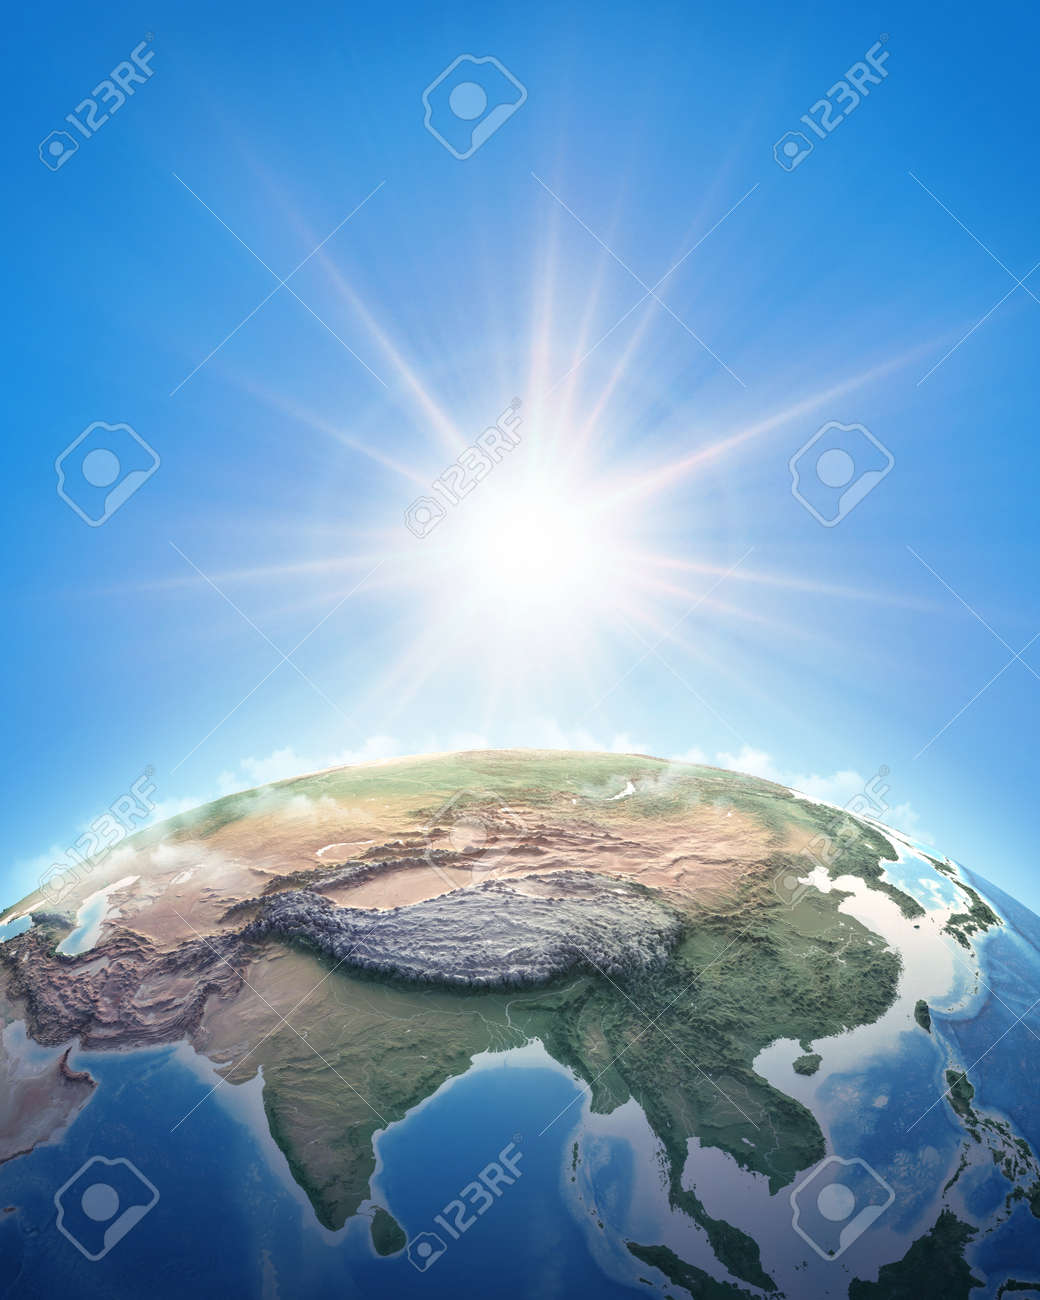 Sun shining over a high detailed view of Planet Earth, focused on East Asia, China and Himalayas. 3D illustration - 167588244